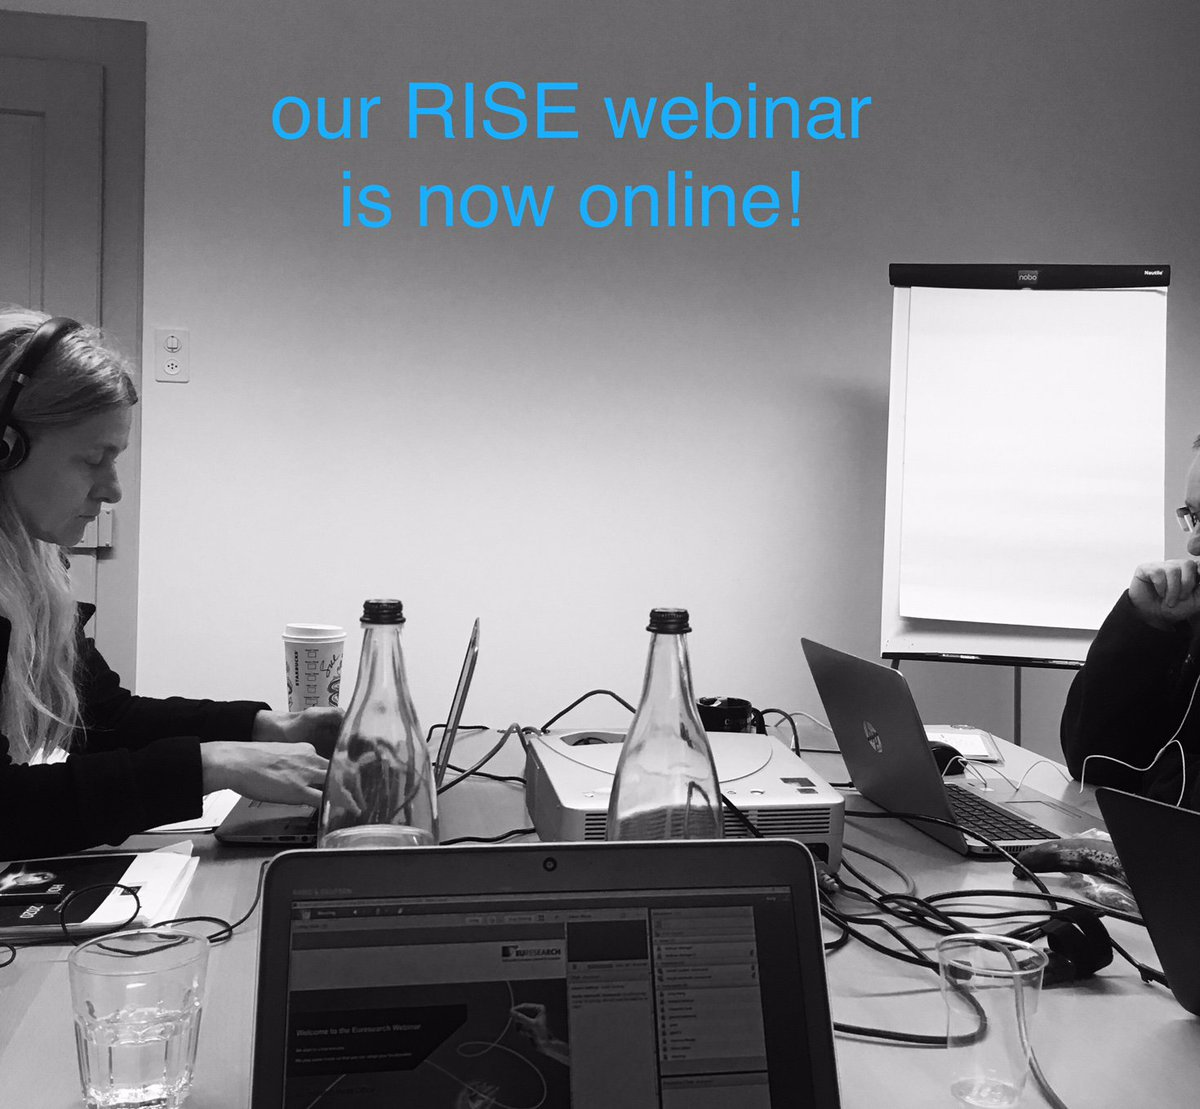 In case you missed our #MSCA #RISE #WEBINAR this morning - watch it anytime on Euresearch&#39;s YouTube Channel:   https://www. youtube.com/watch?v=eRzPcZ b1Qv4&amp;feature=youtu.be &nbsp; … <br>http://pic.twitter.com/n07rBL5KUl